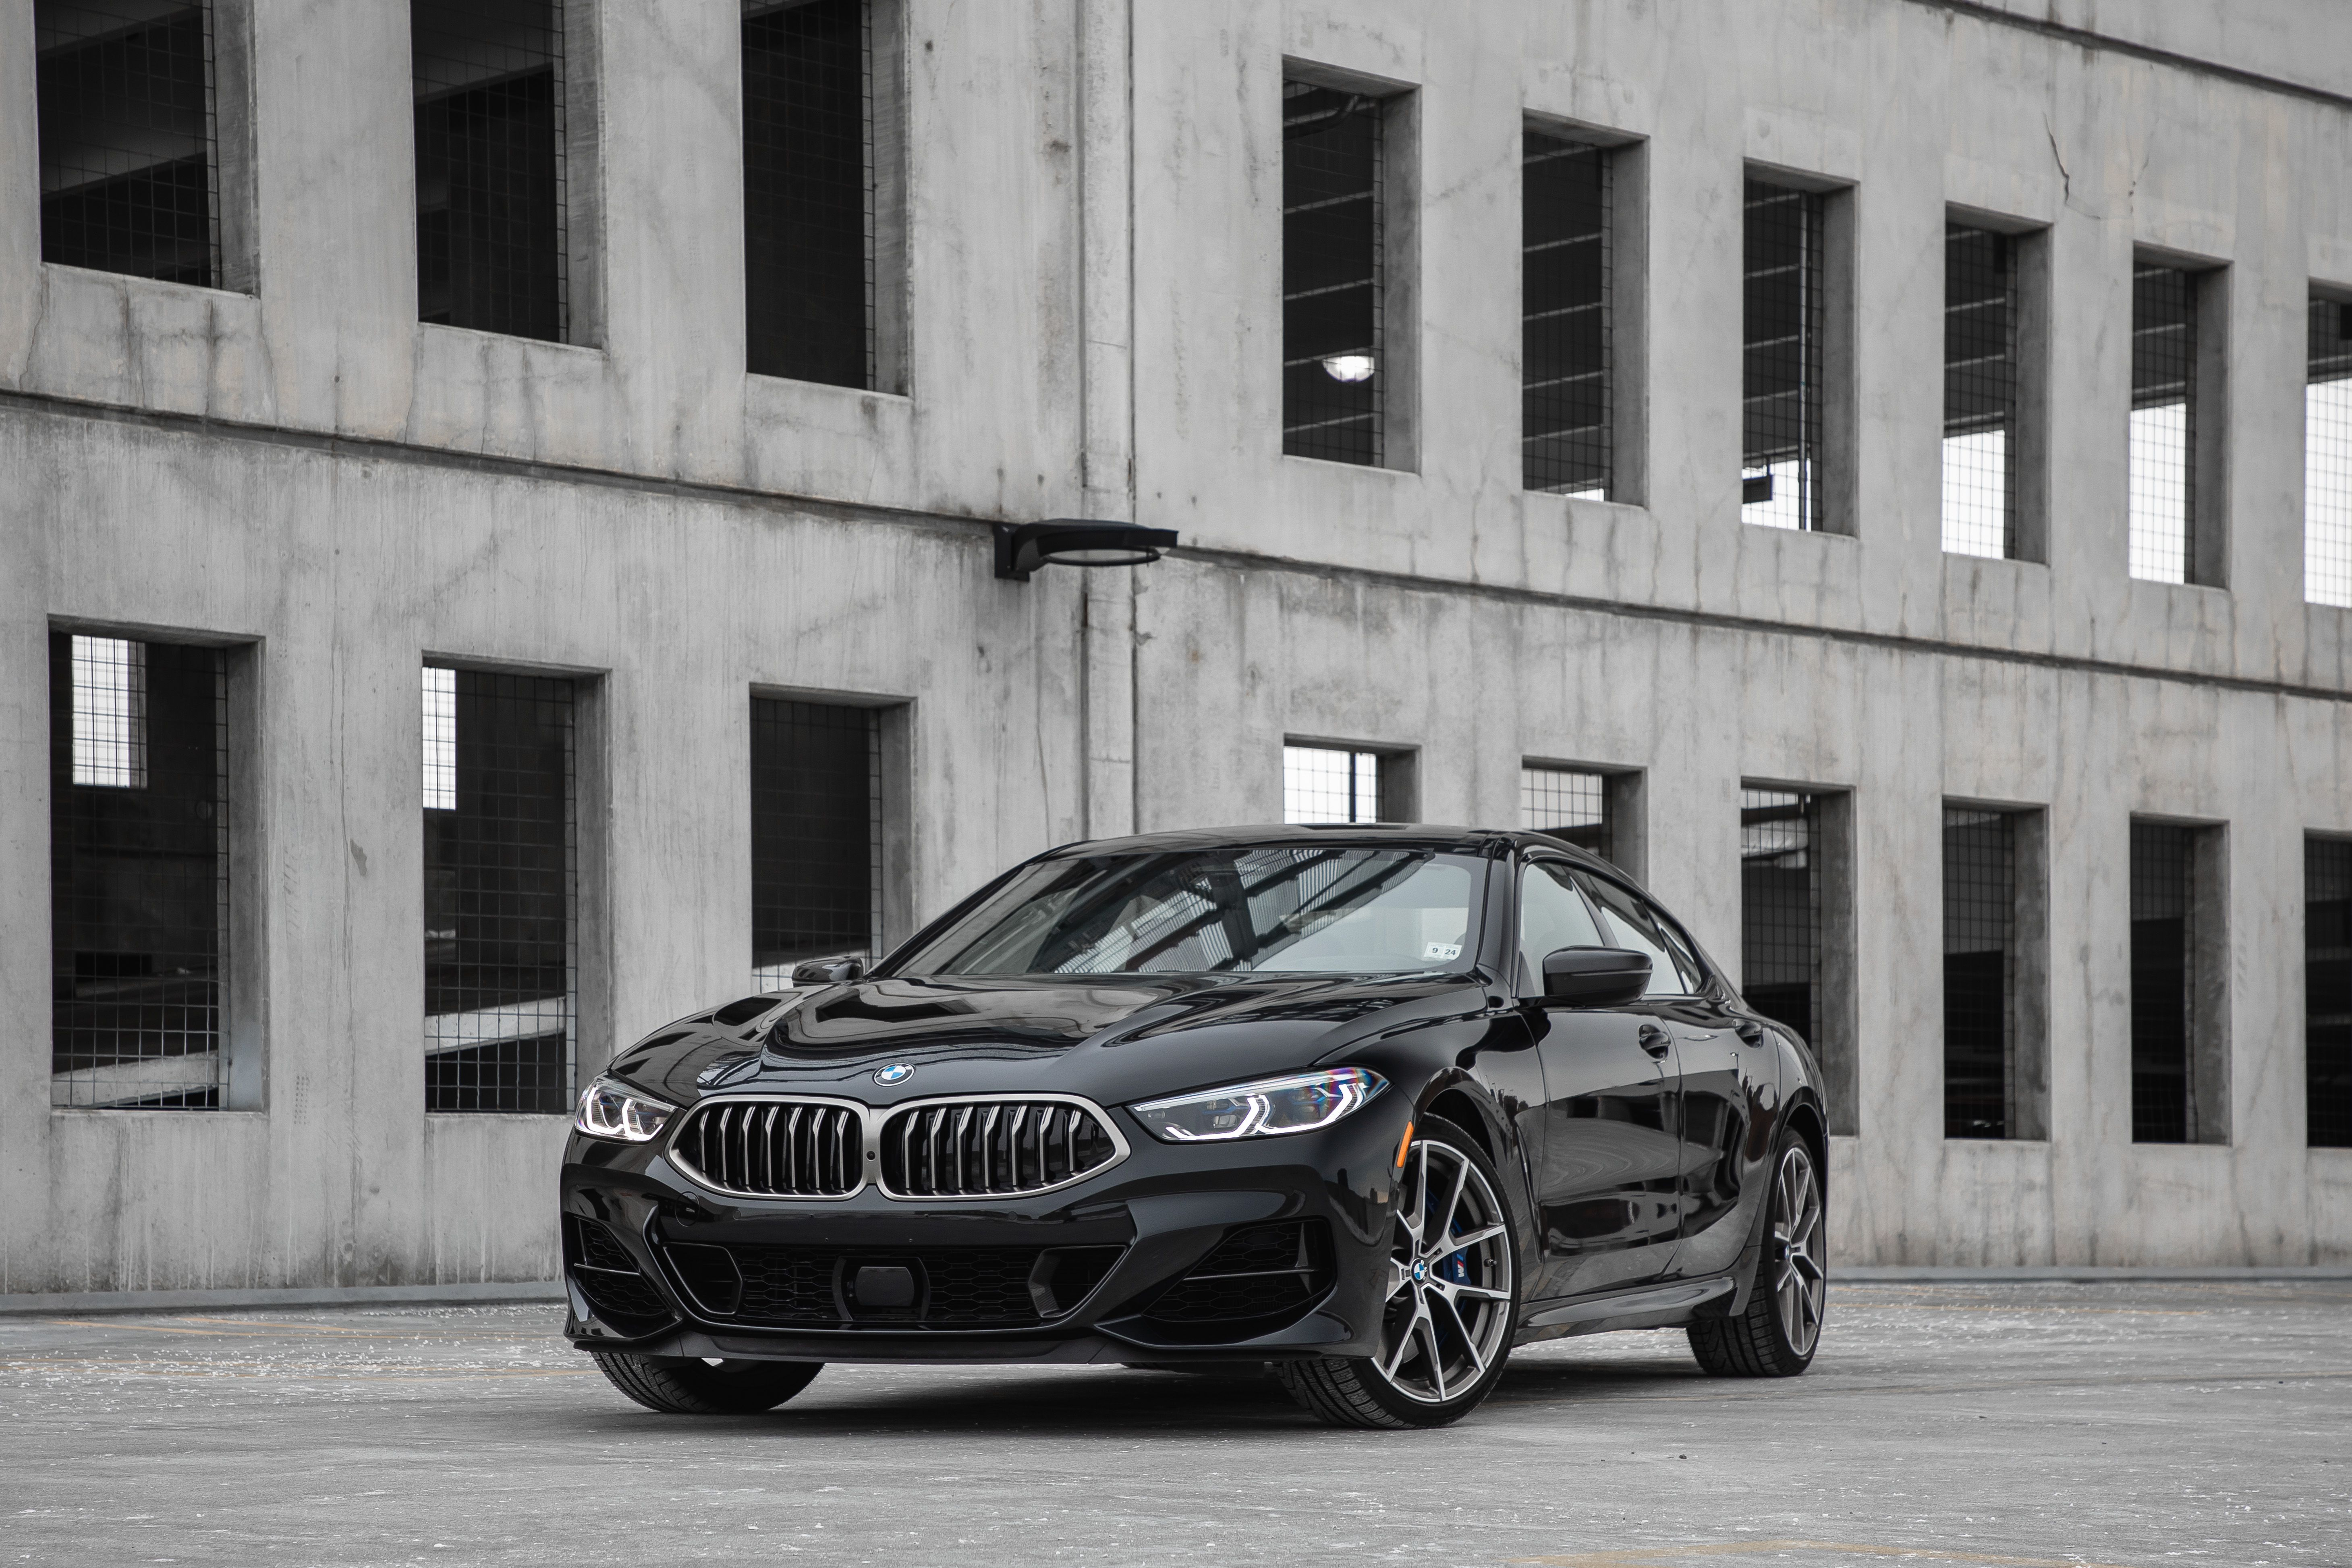 2020 Bmw M850i Gran Coupe Tries To Balance Sportiness And Luxury